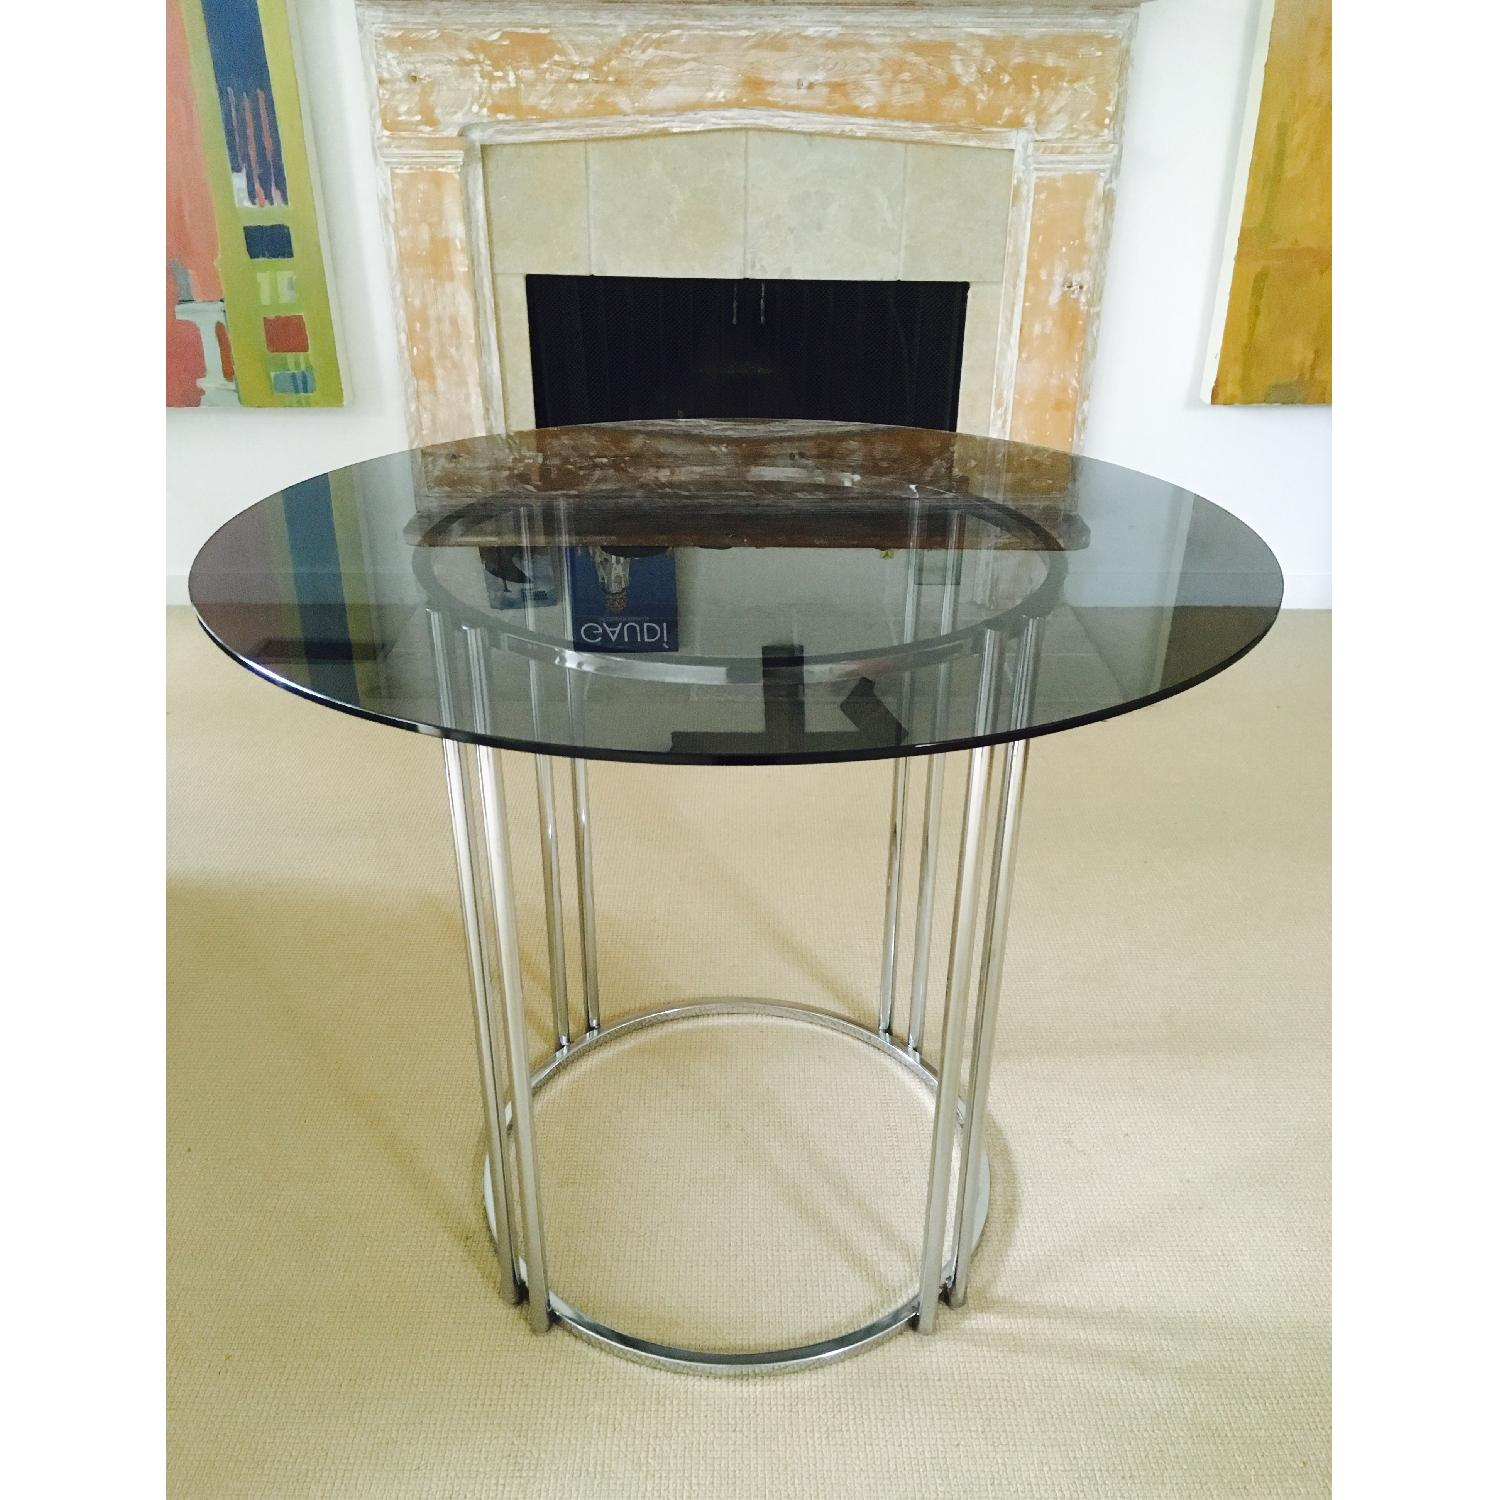 Vintage Chrome & Smoked Glass Dining/Occasional Table - image-3